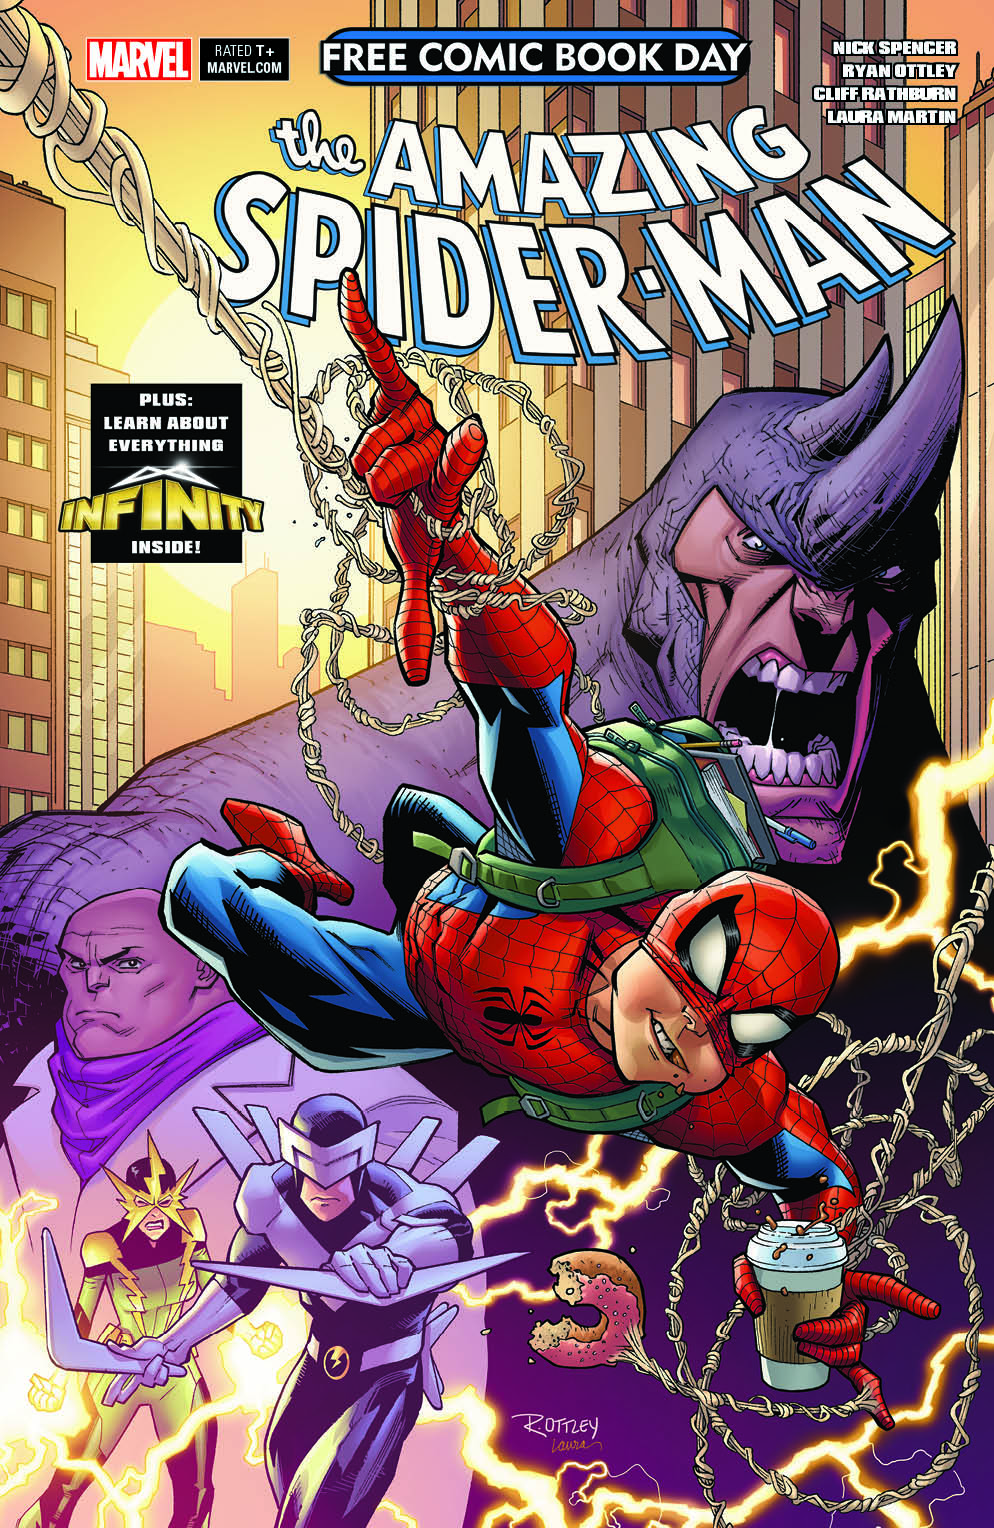 Free Comic Book Day Vol 2018 Amazing Spider-Man.jpg